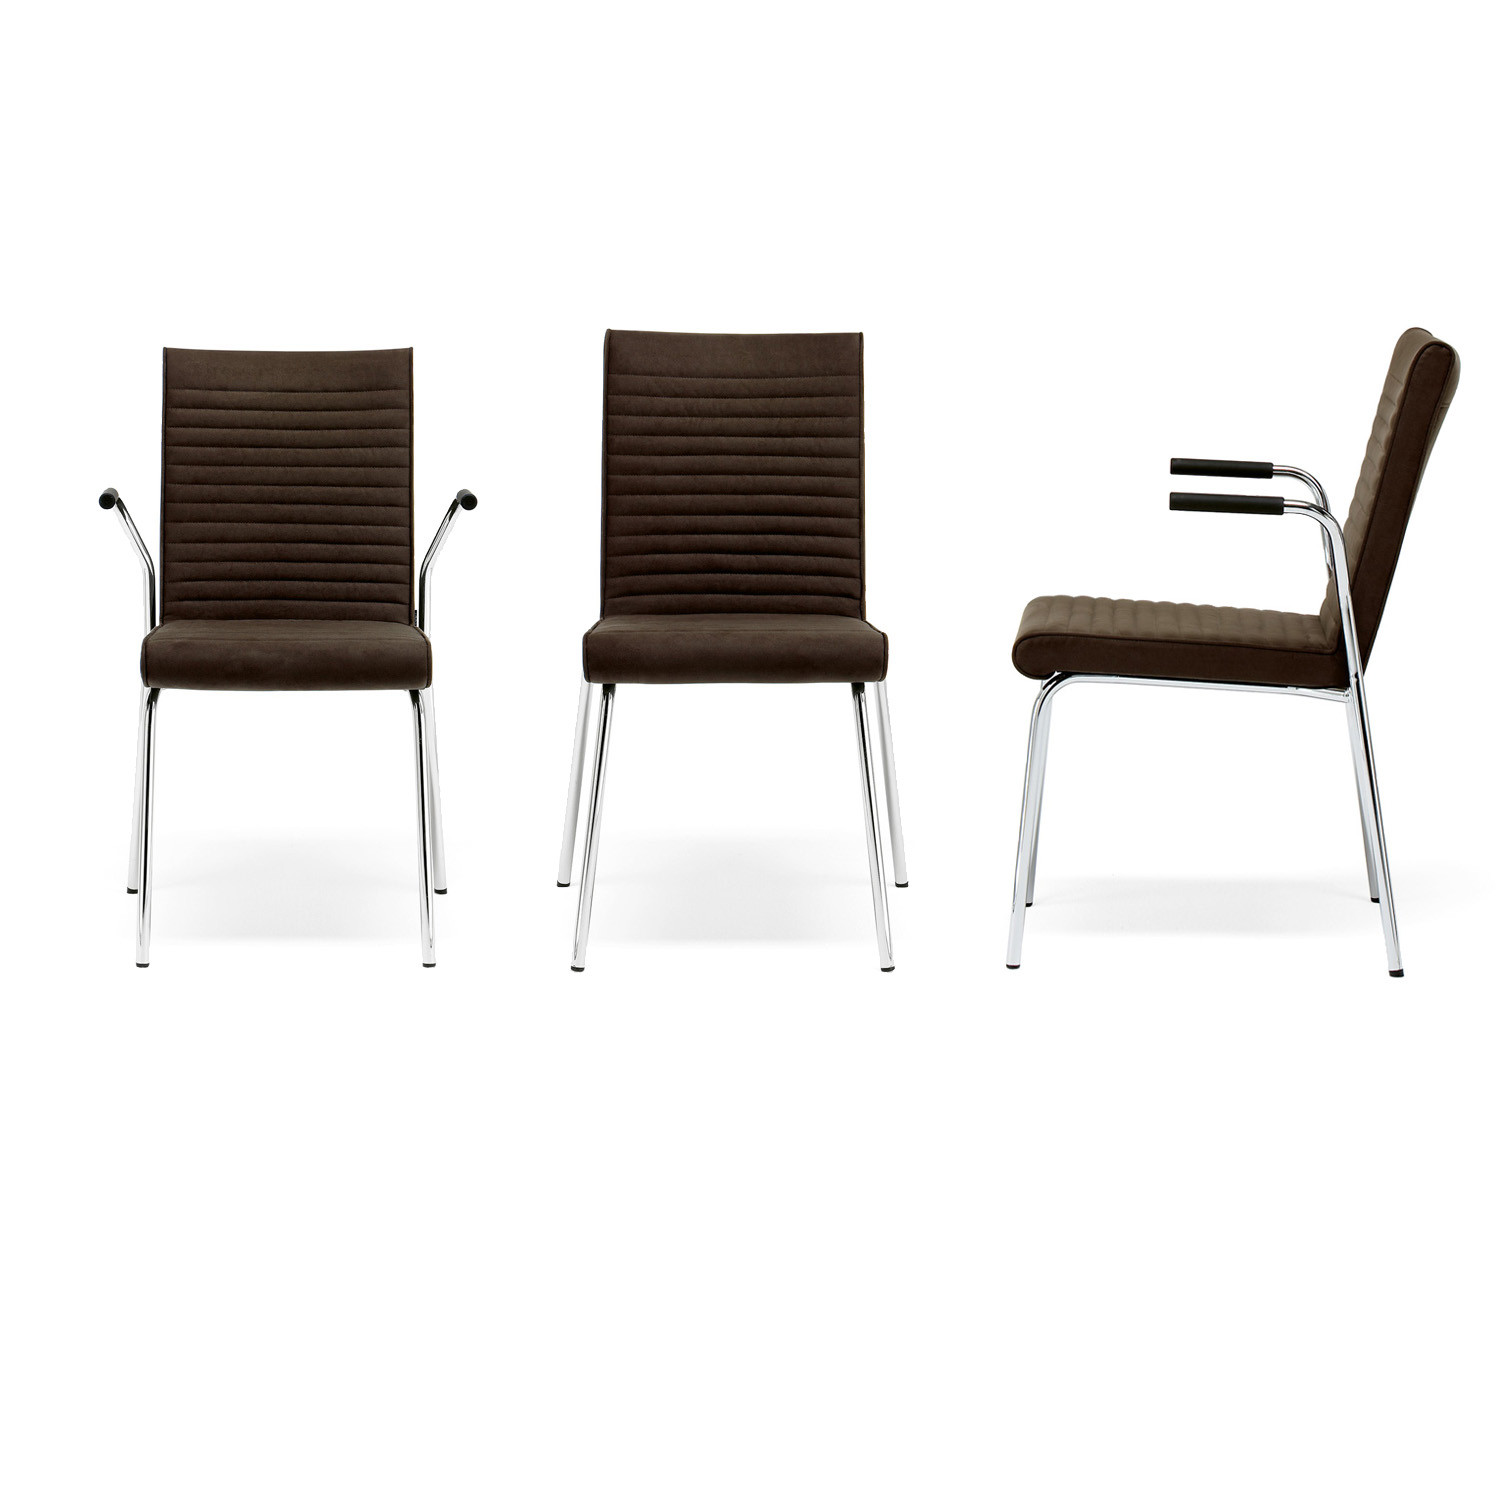 Quick Visitor Chair with armrests